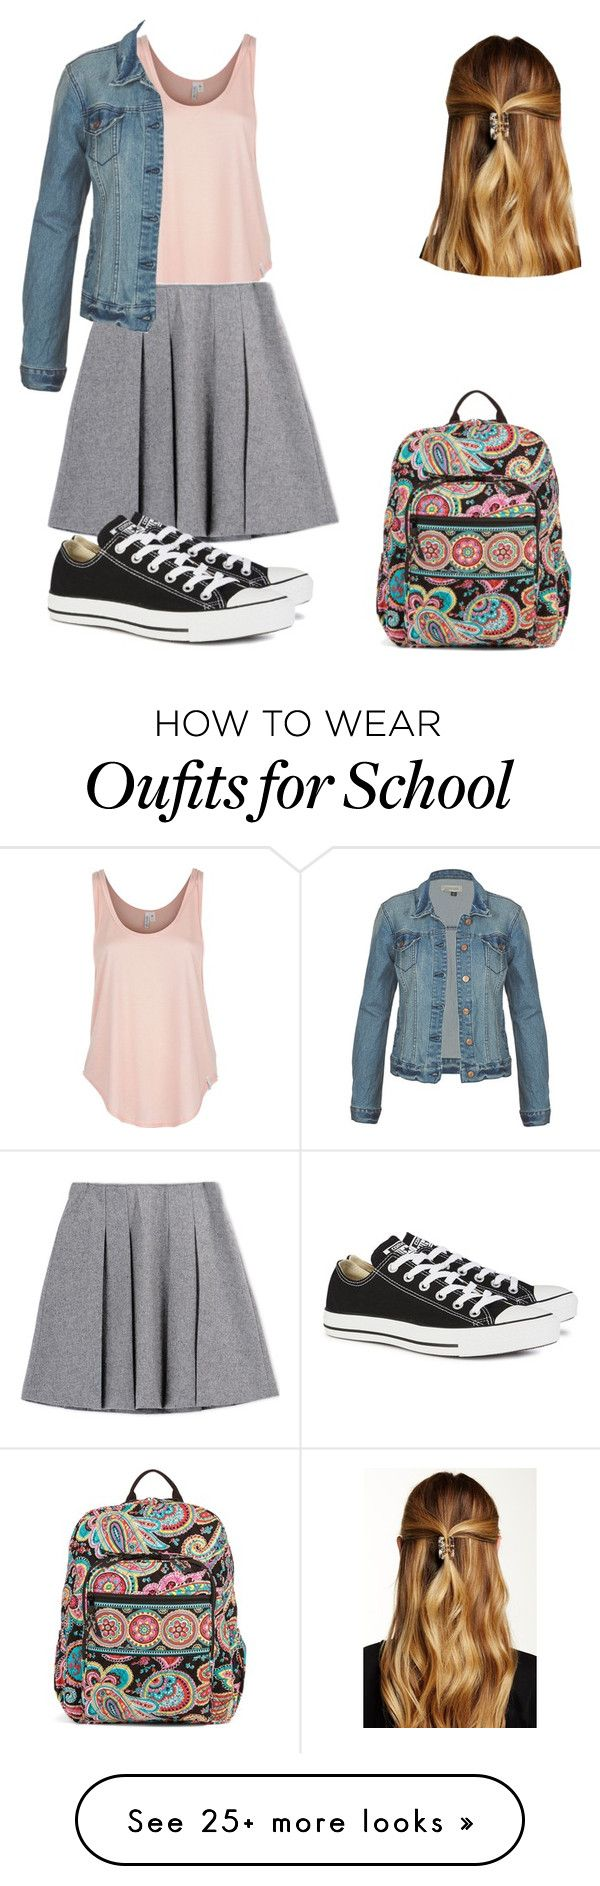 """school girl"" by amirahtaylor on Polyvore featuring Rip Curl, Vera Bradley, Converse and Natasha Accessories"